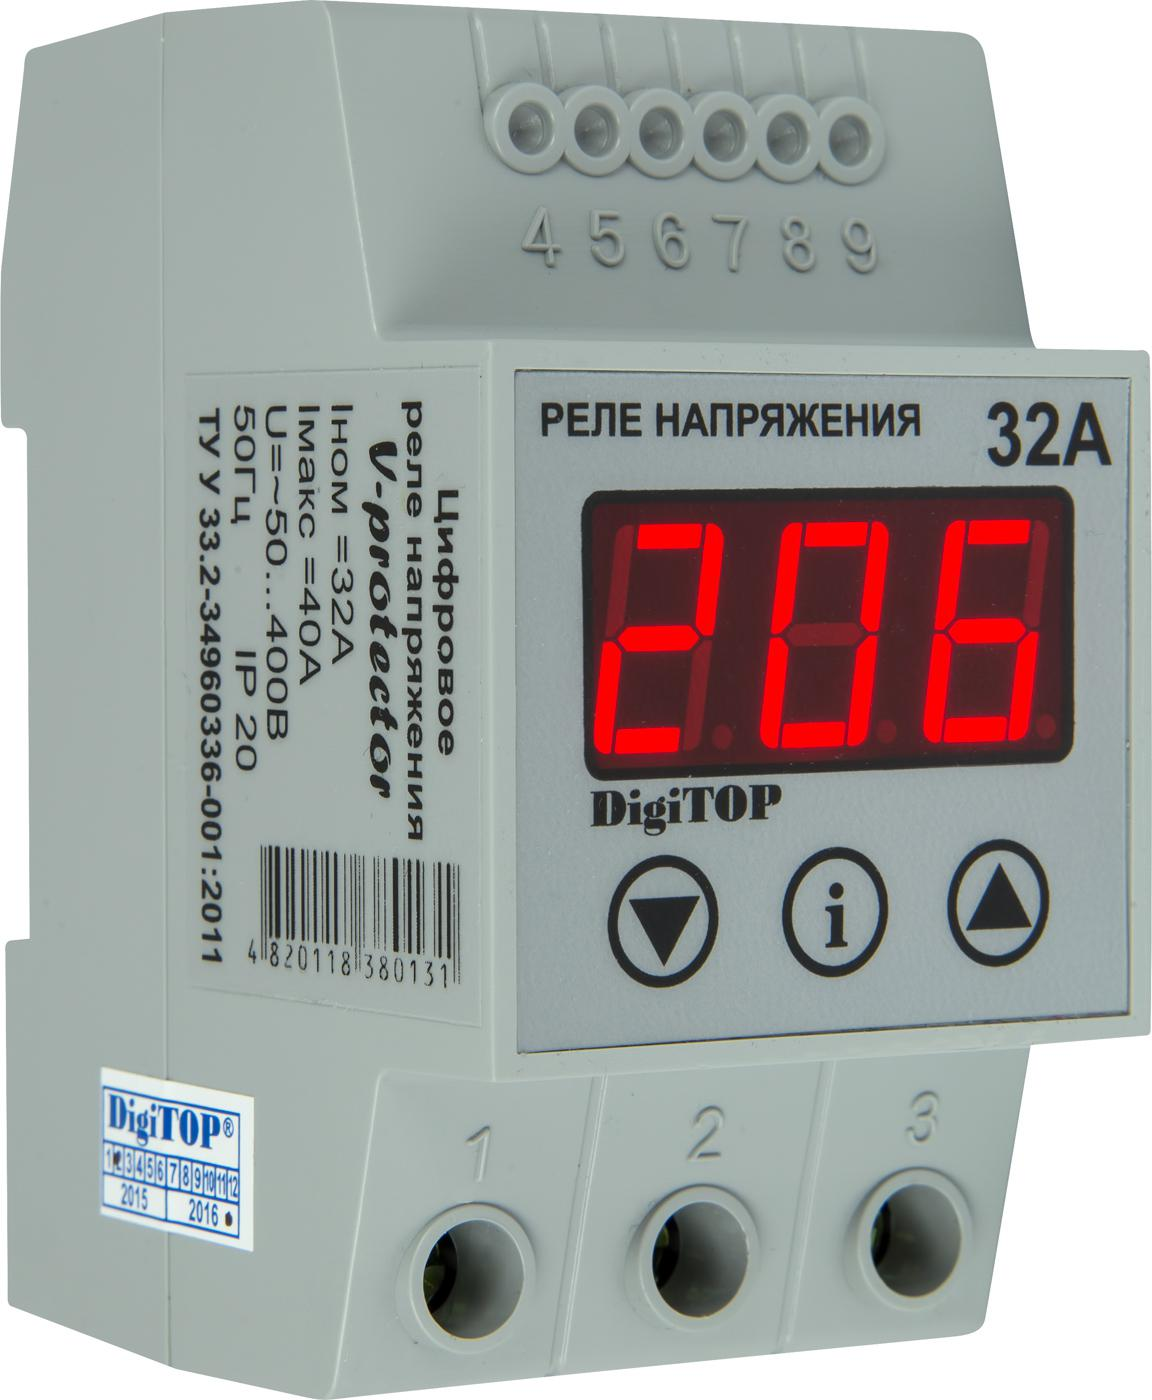 Реле напряжения Digitop Vp-32a roland vp 540 rs 640 vp 300 disk raster strip 360lpi 1000002162